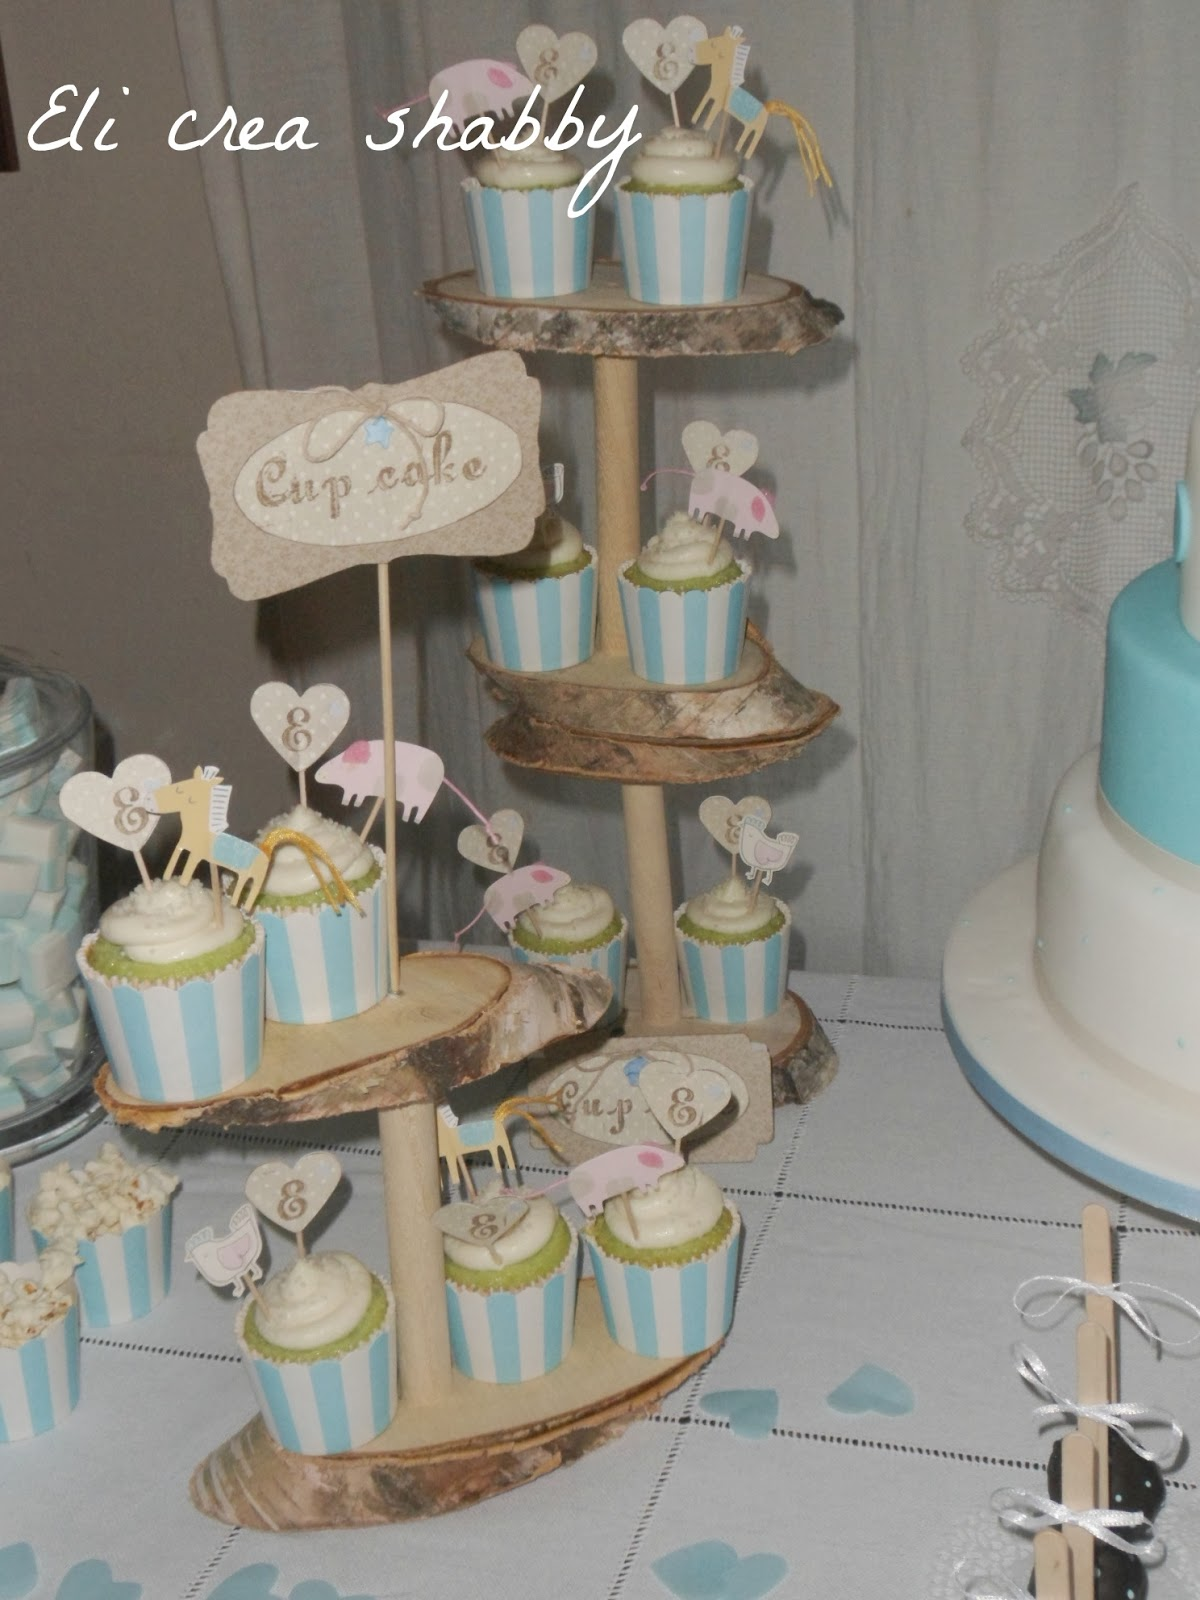 Eli crea shabby & co.: sweet table per un battesimo